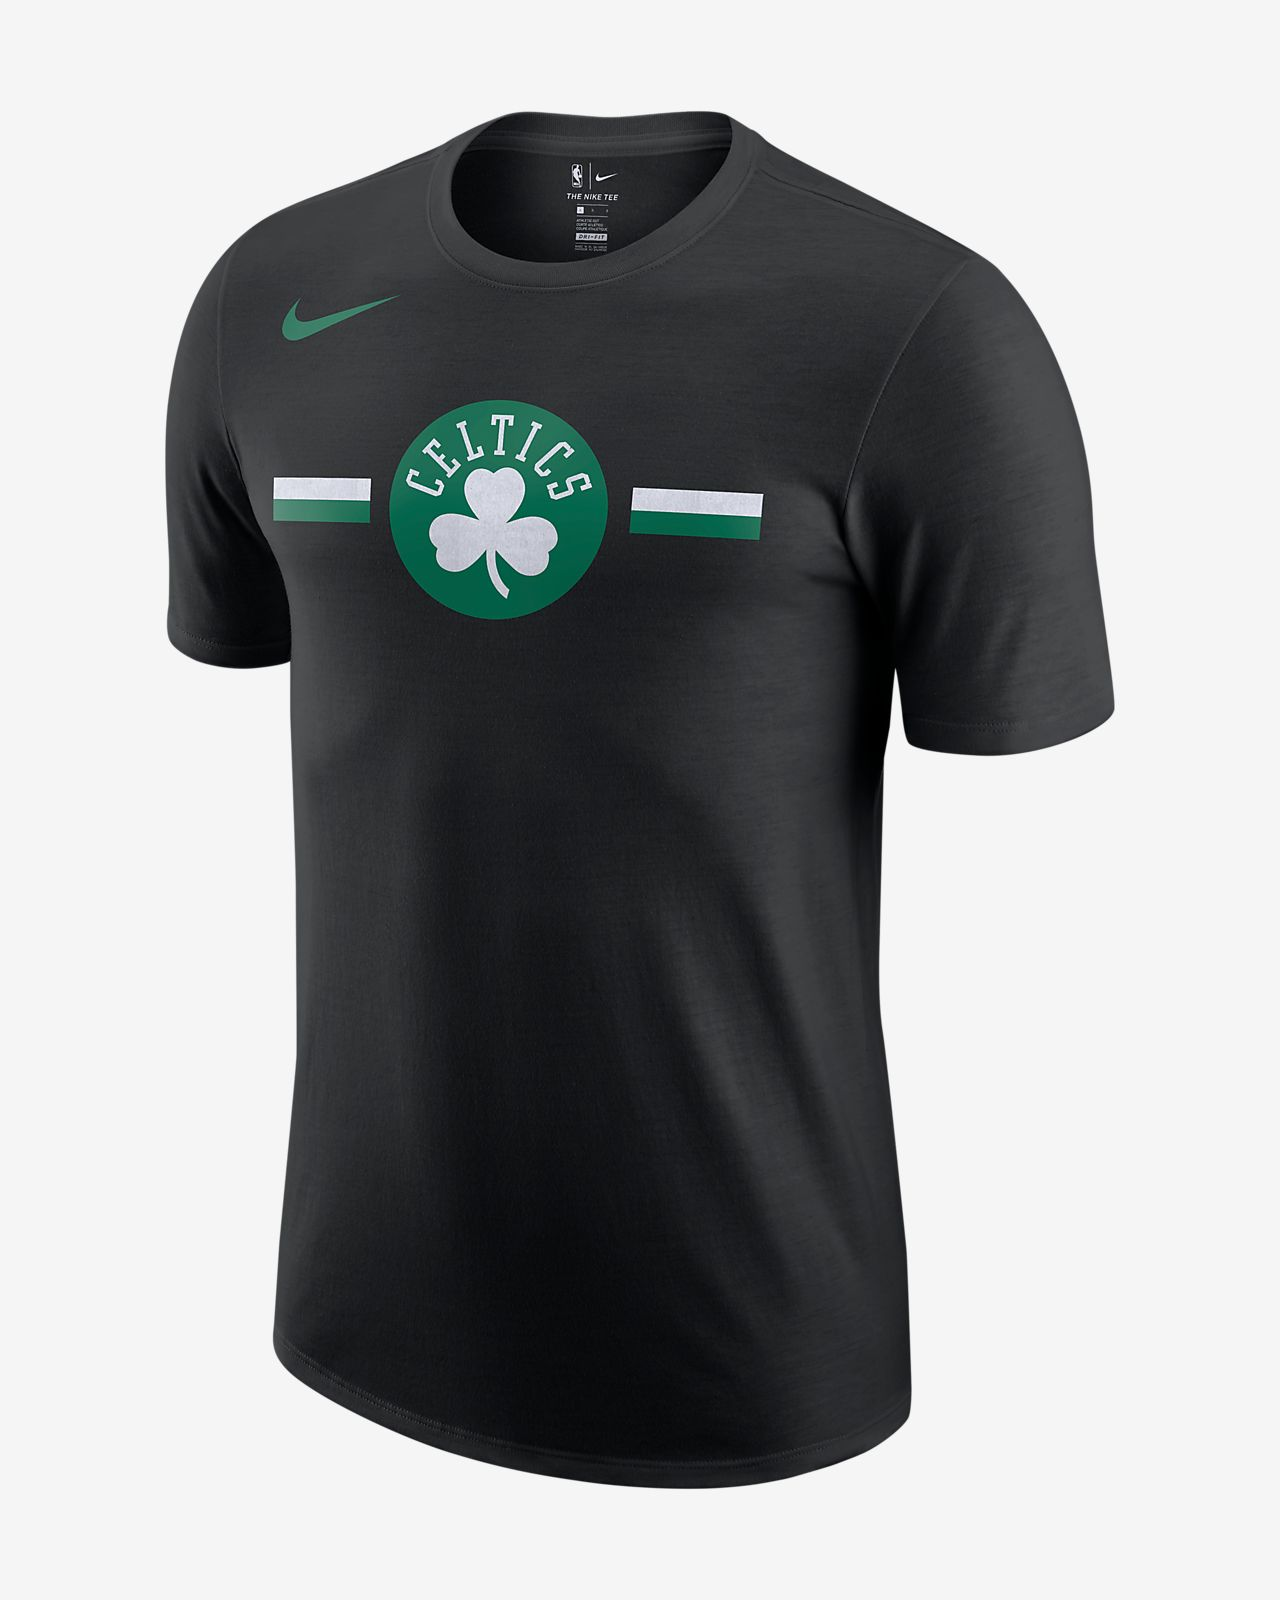 367bcd228bd Boston Celtics Nike Dri-FIT Men's NBA T-Shirt. Nike.com